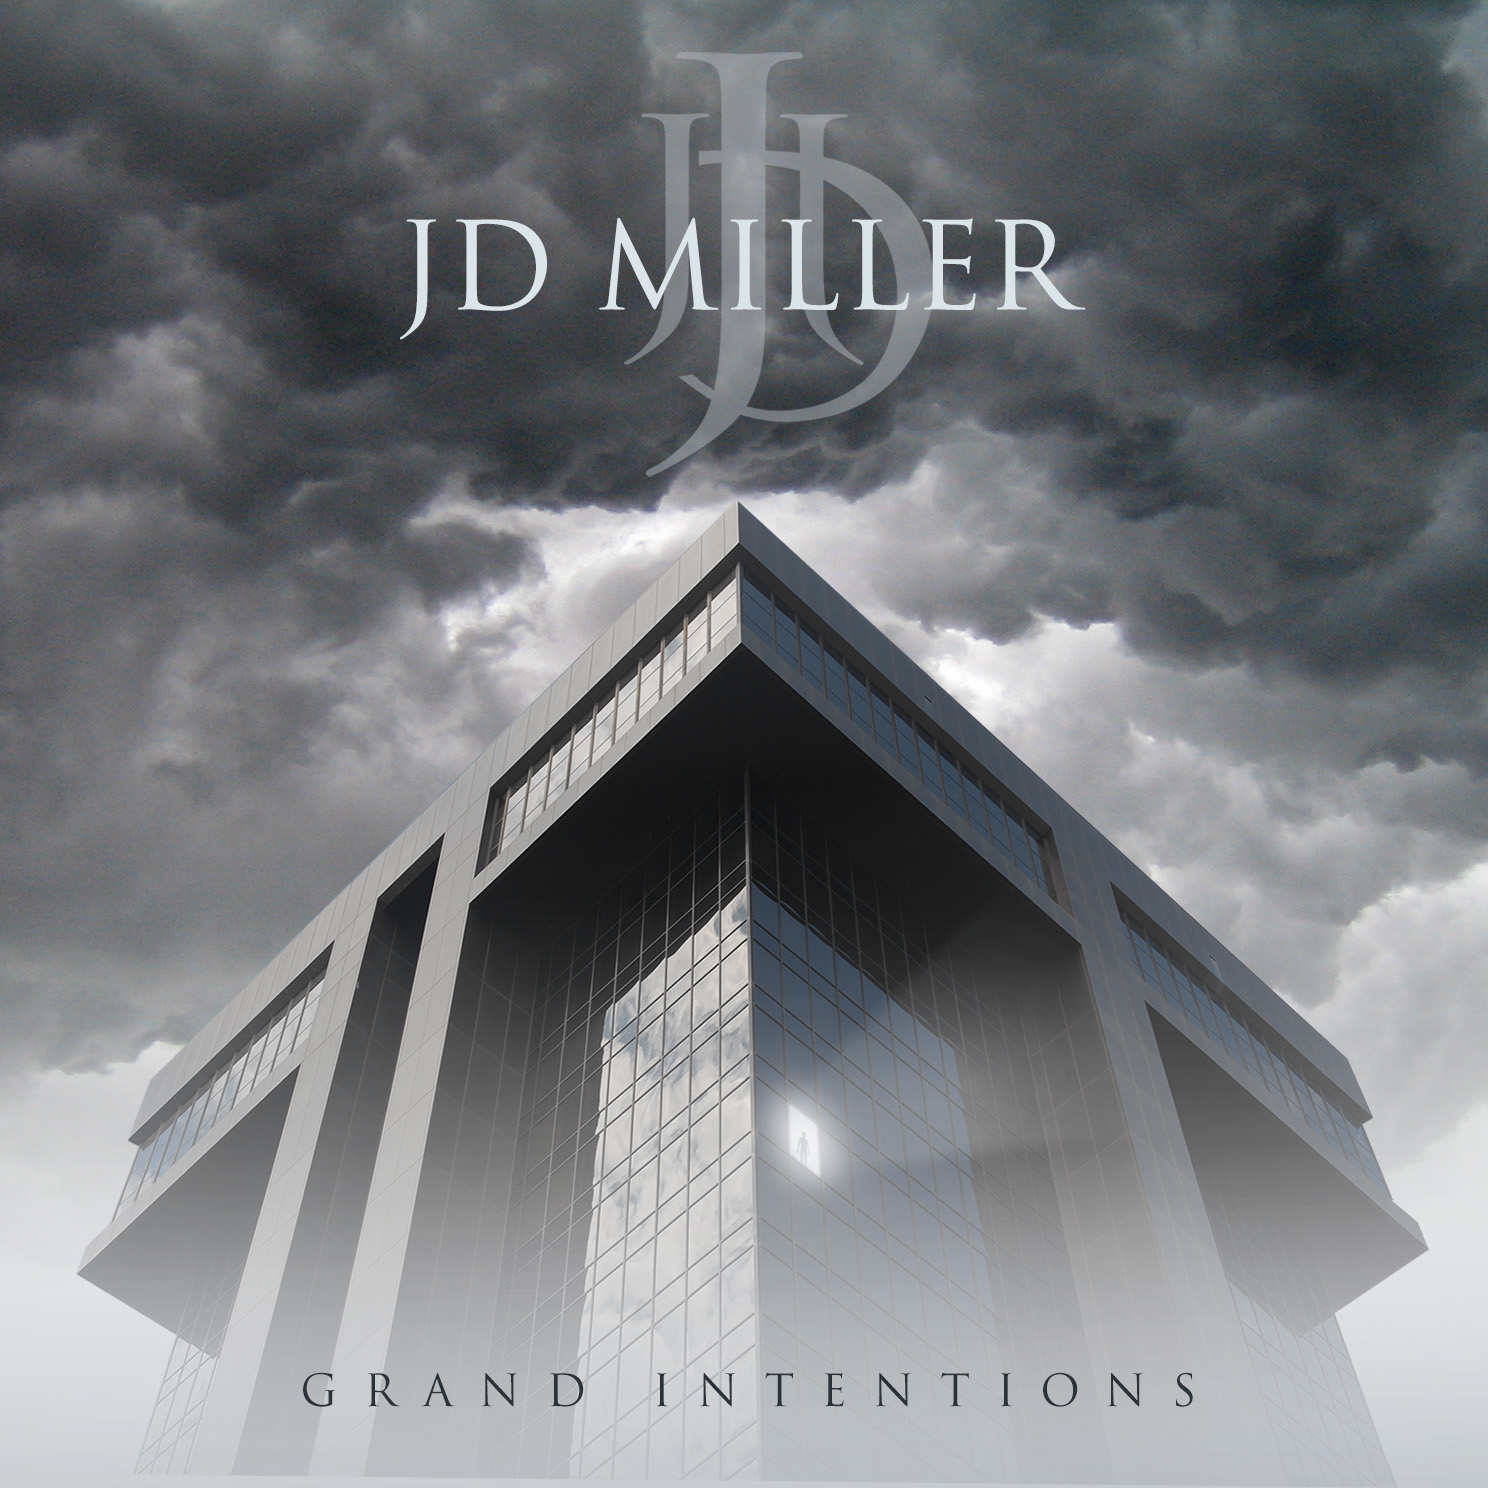 Grand Intentions CD